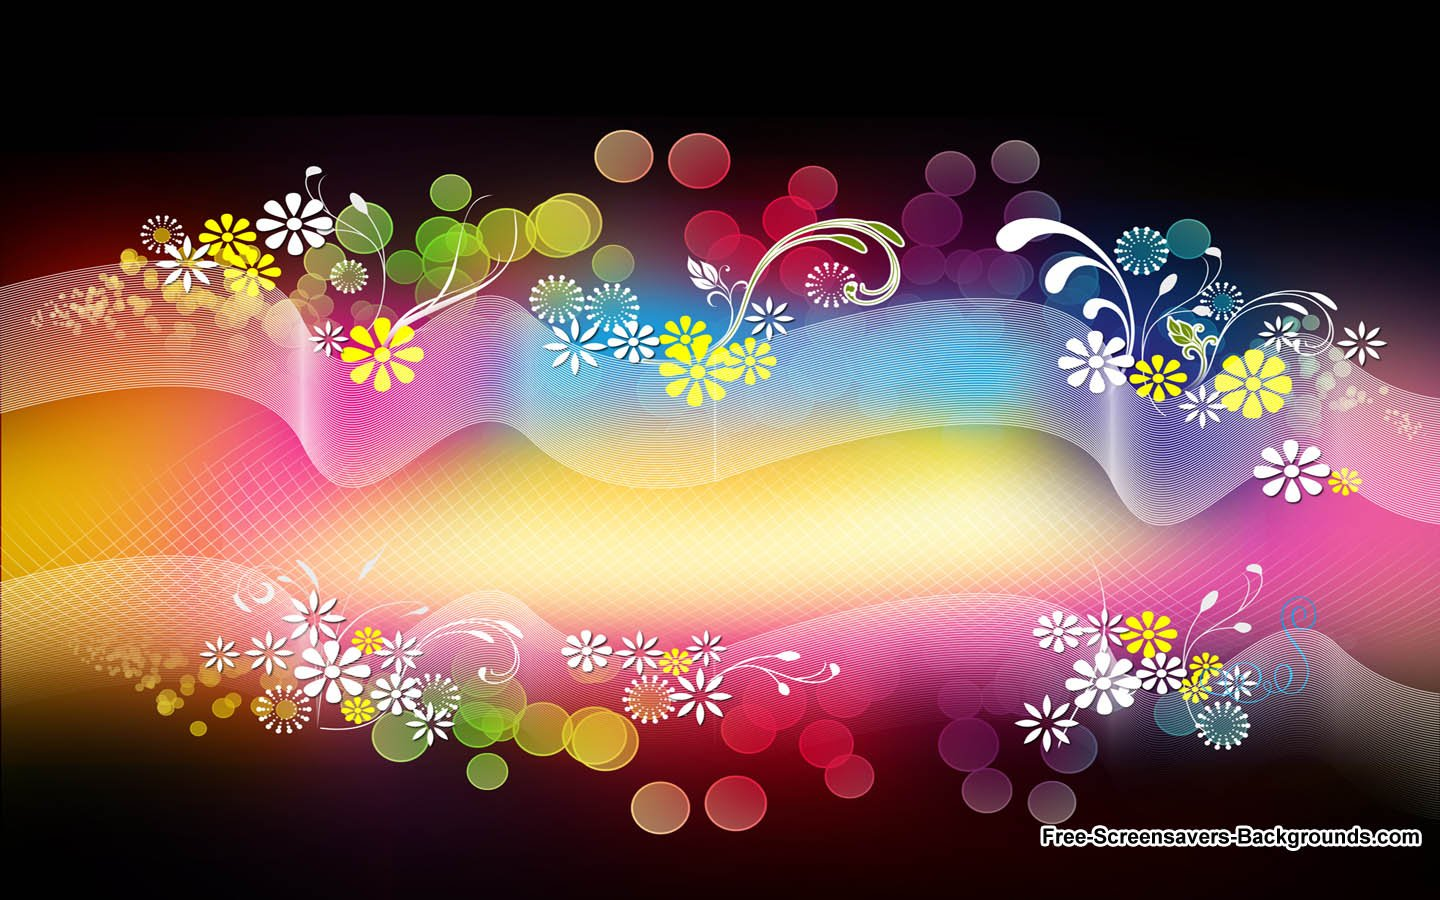 Free wallpapers and screensavers for laptops wallpapersafari for Screensaver hd gratis